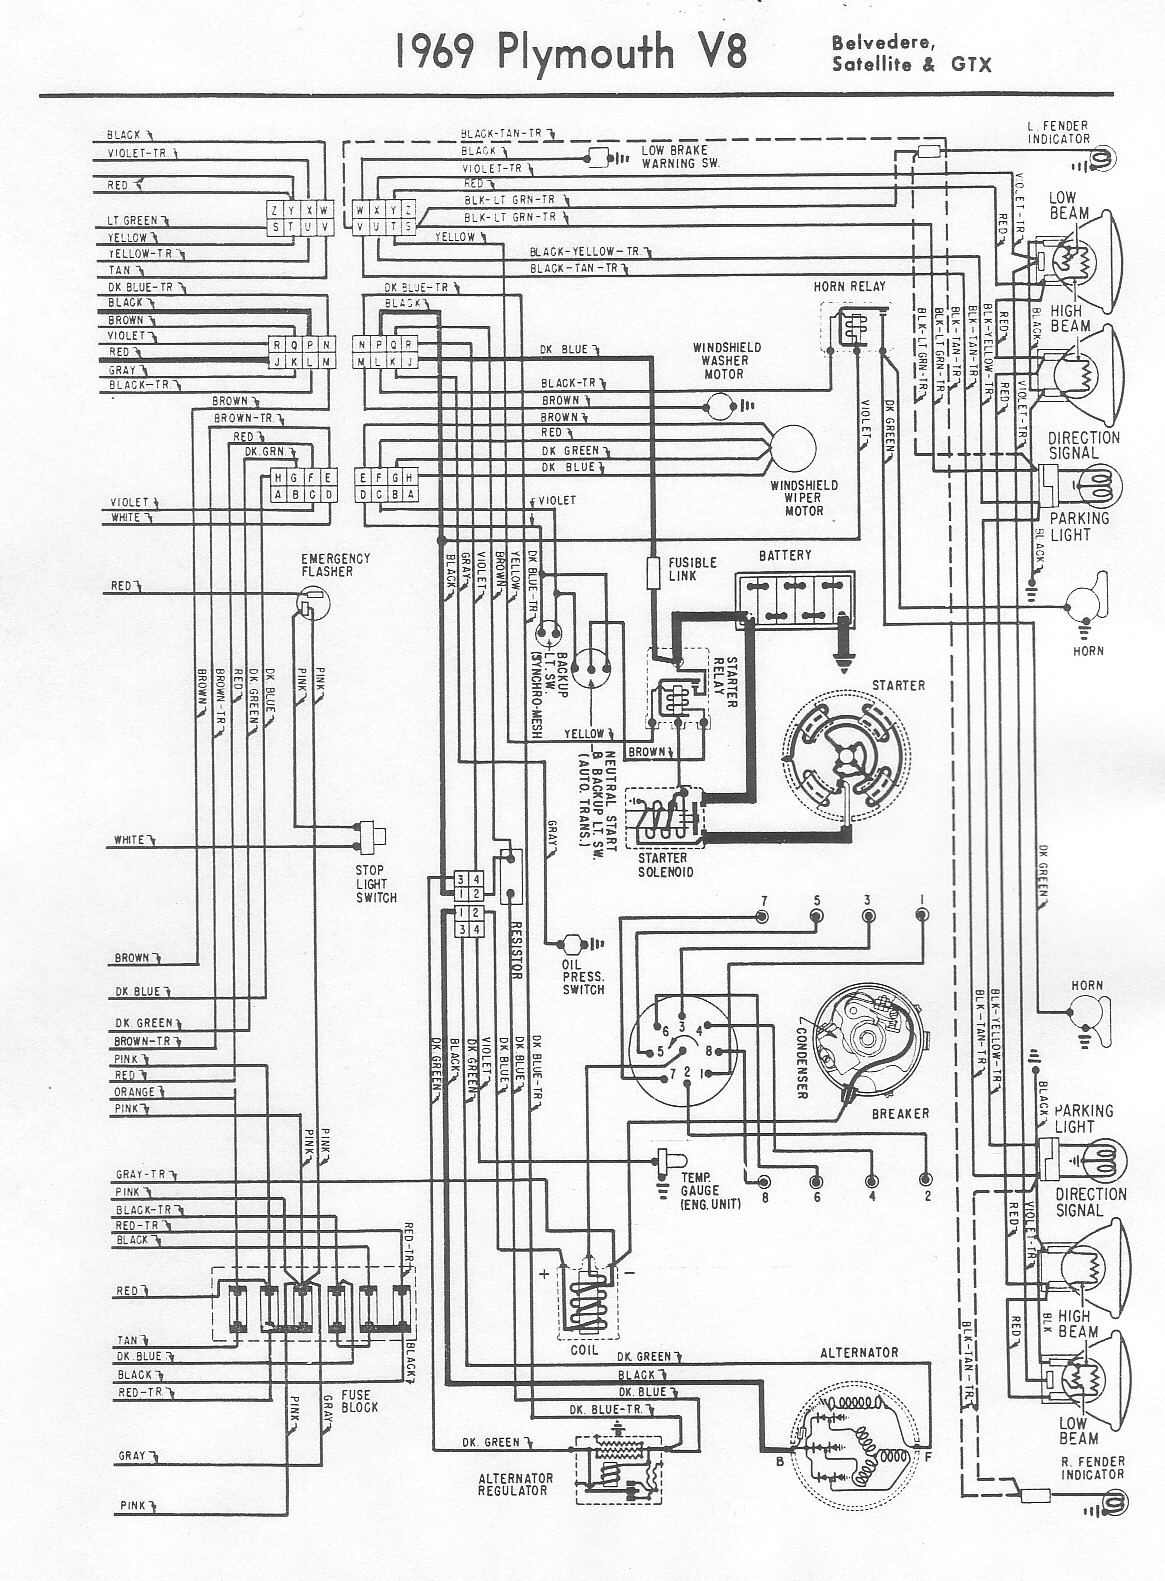 1965 plymouth wiring diagram wiring diagram libraries chrysler 383 wiring diagram wiring diagram detailedplymouth 383 wire diagram wiring diagram for you